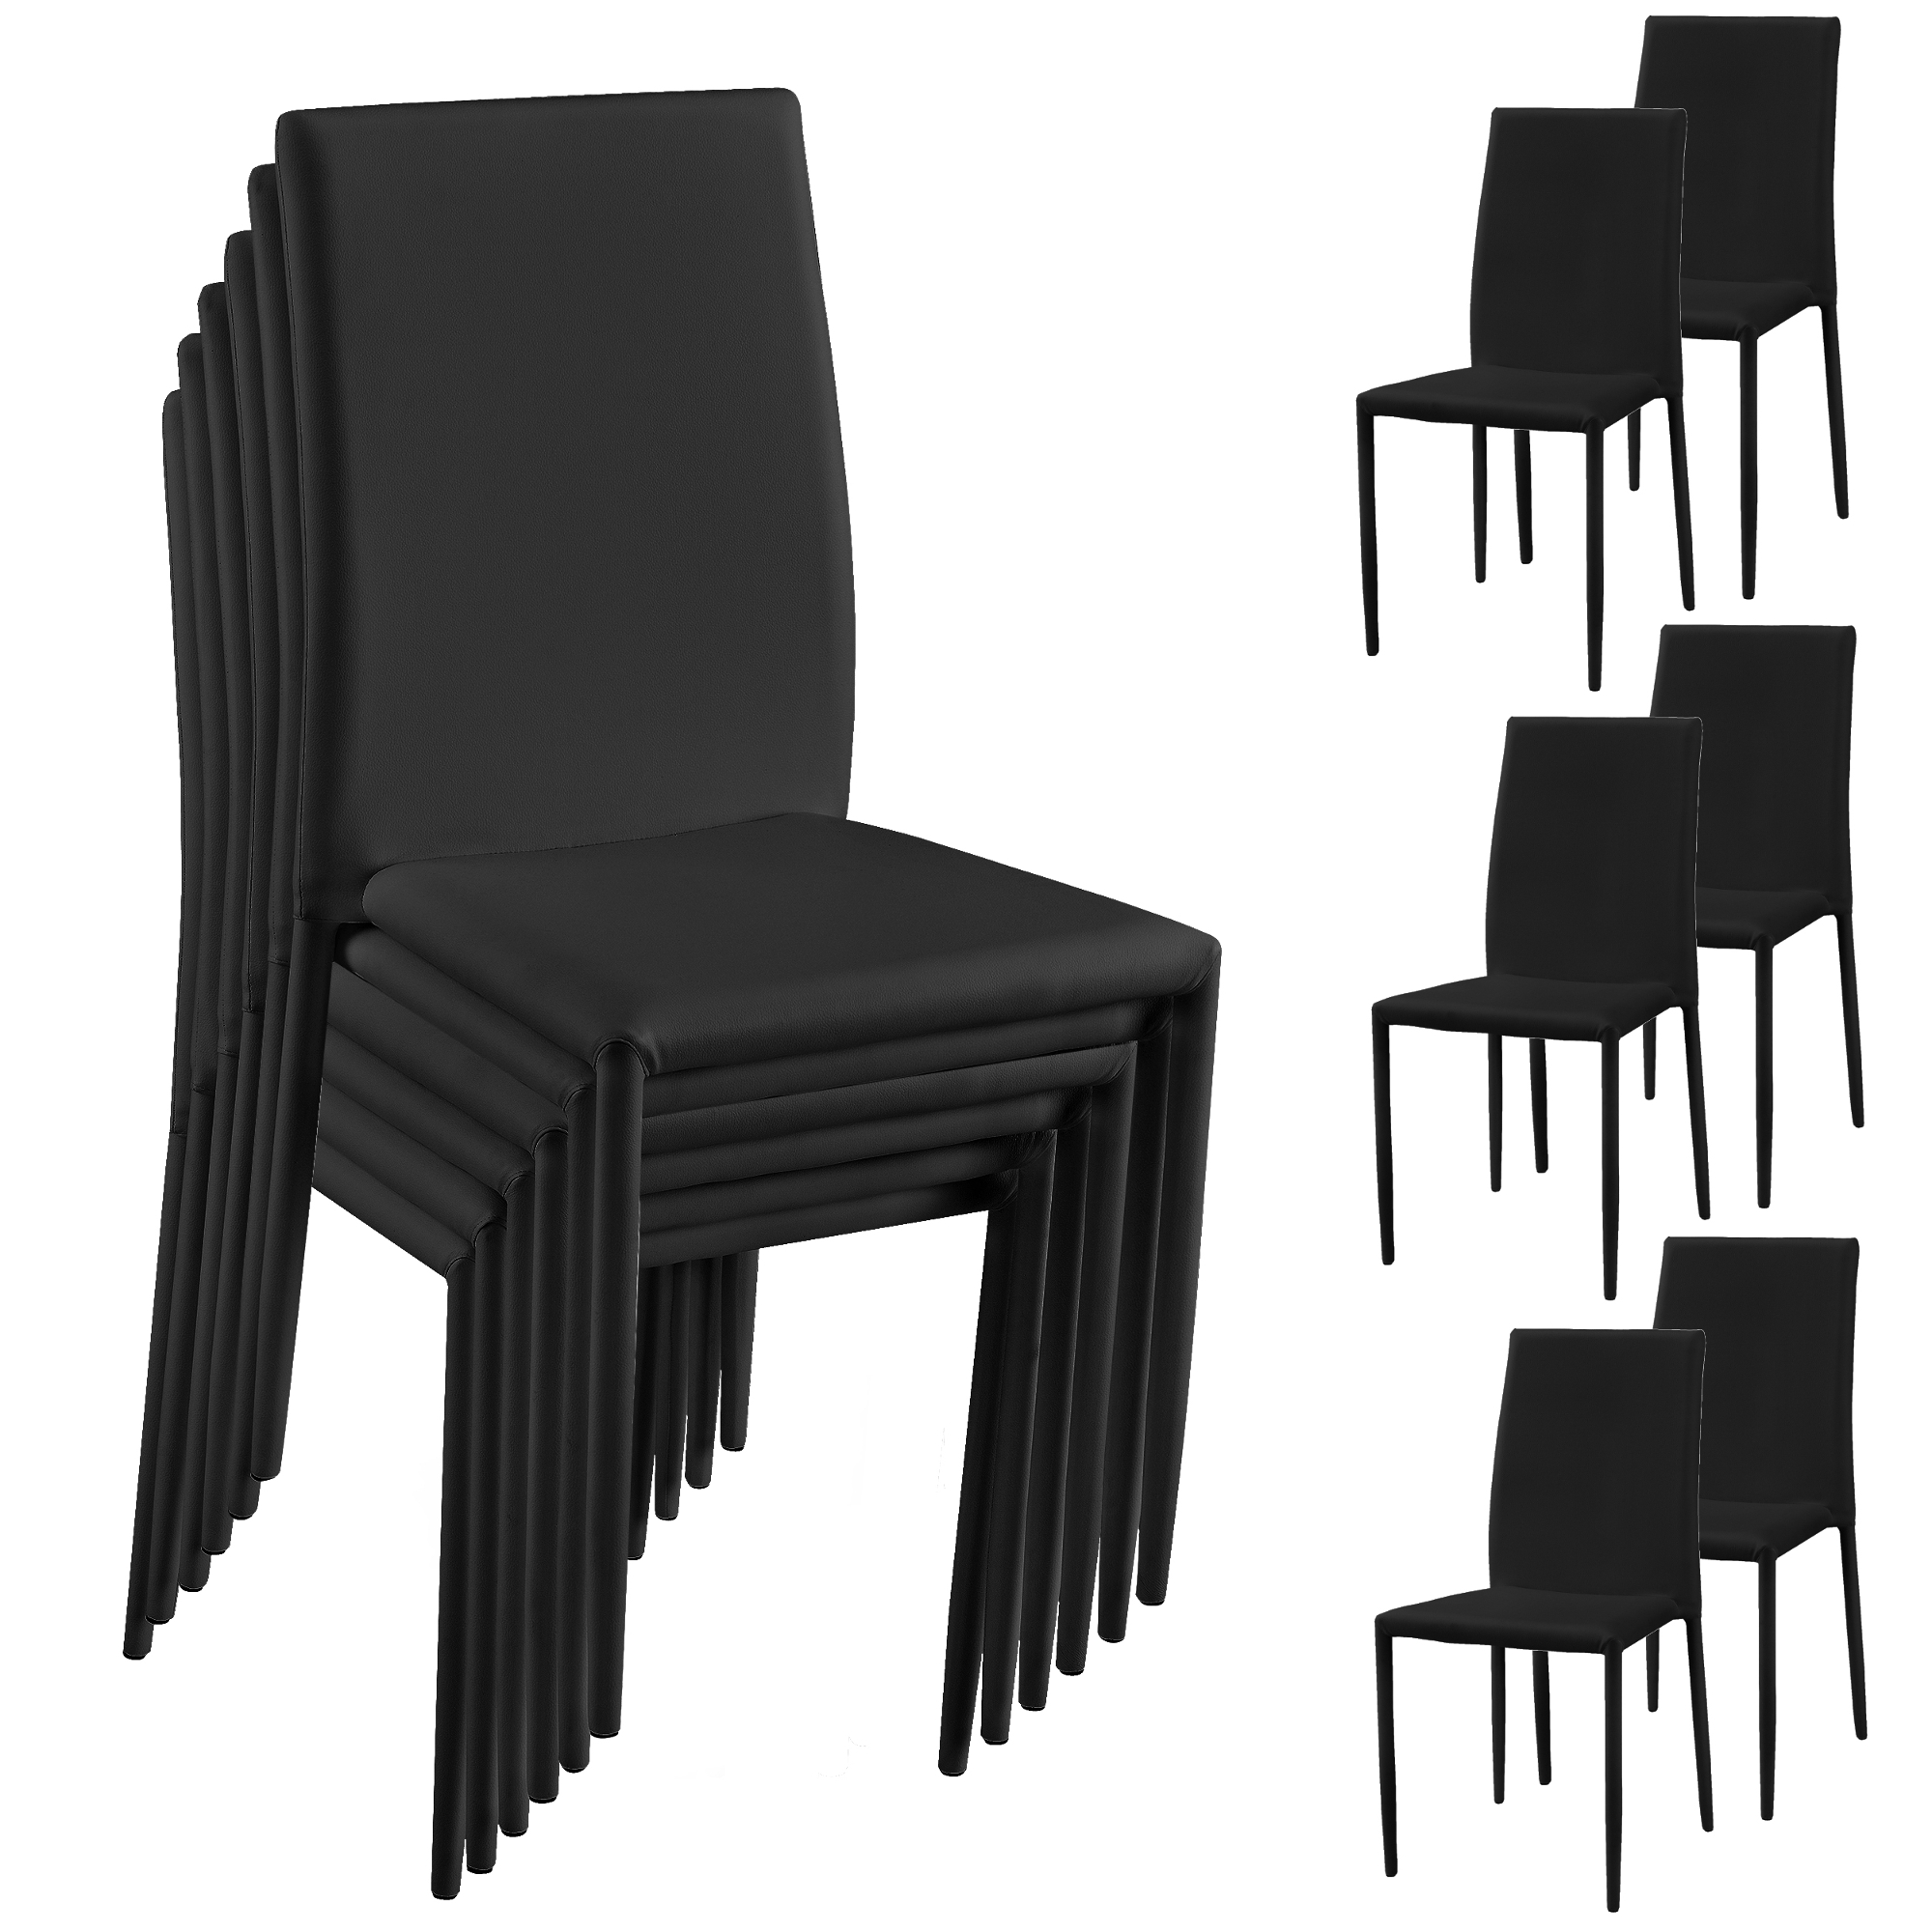 esszimmerstuhl 6er set wohnzimmer k chenstuhl esszimmer st hle ebay. Black Bedroom Furniture Sets. Home Design Ideas